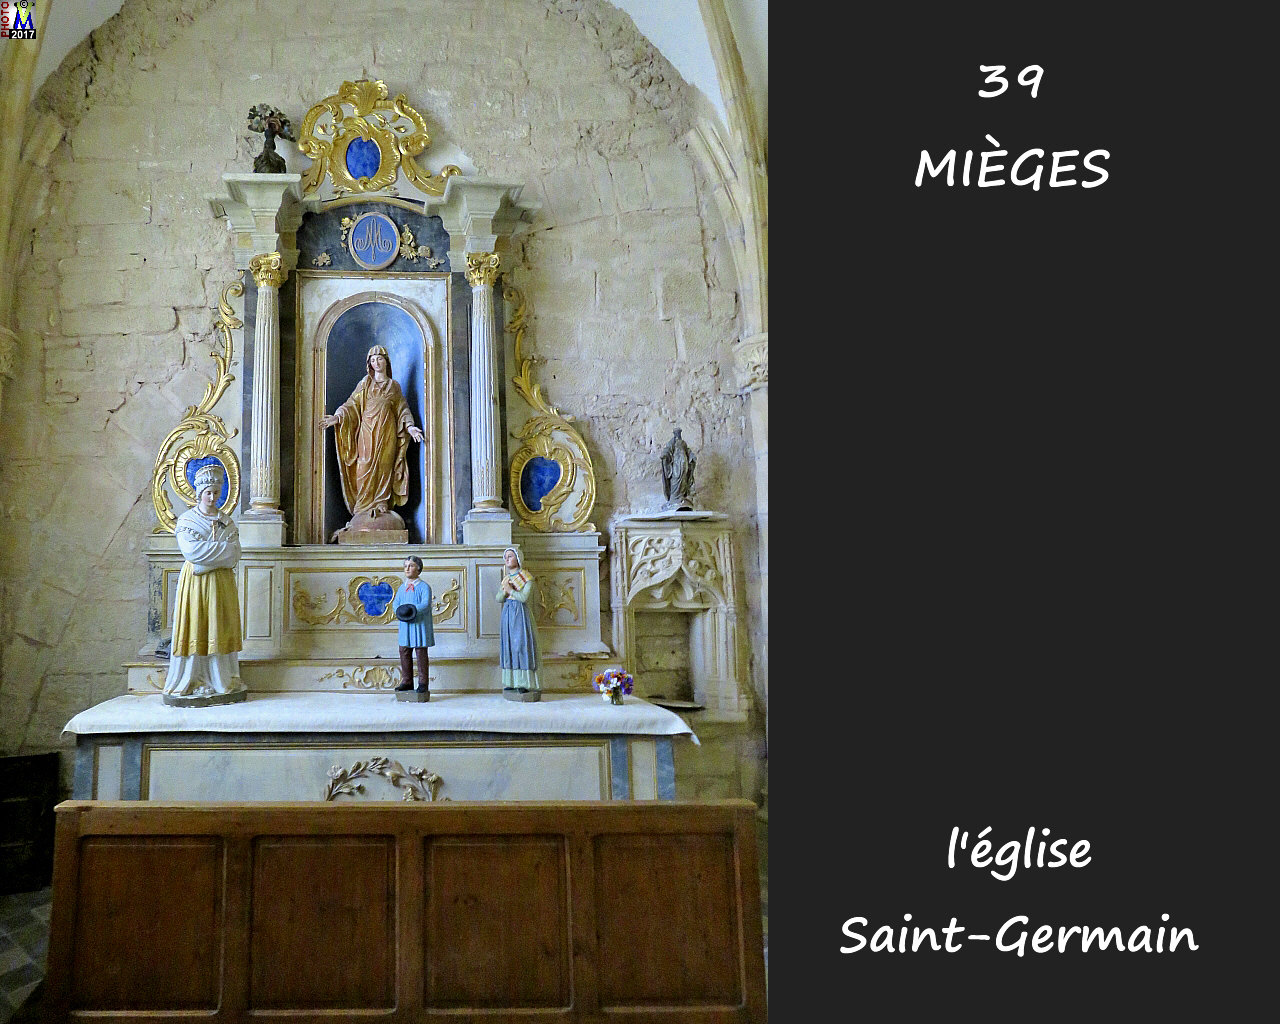 39MIEGES_eglise_228.jpg